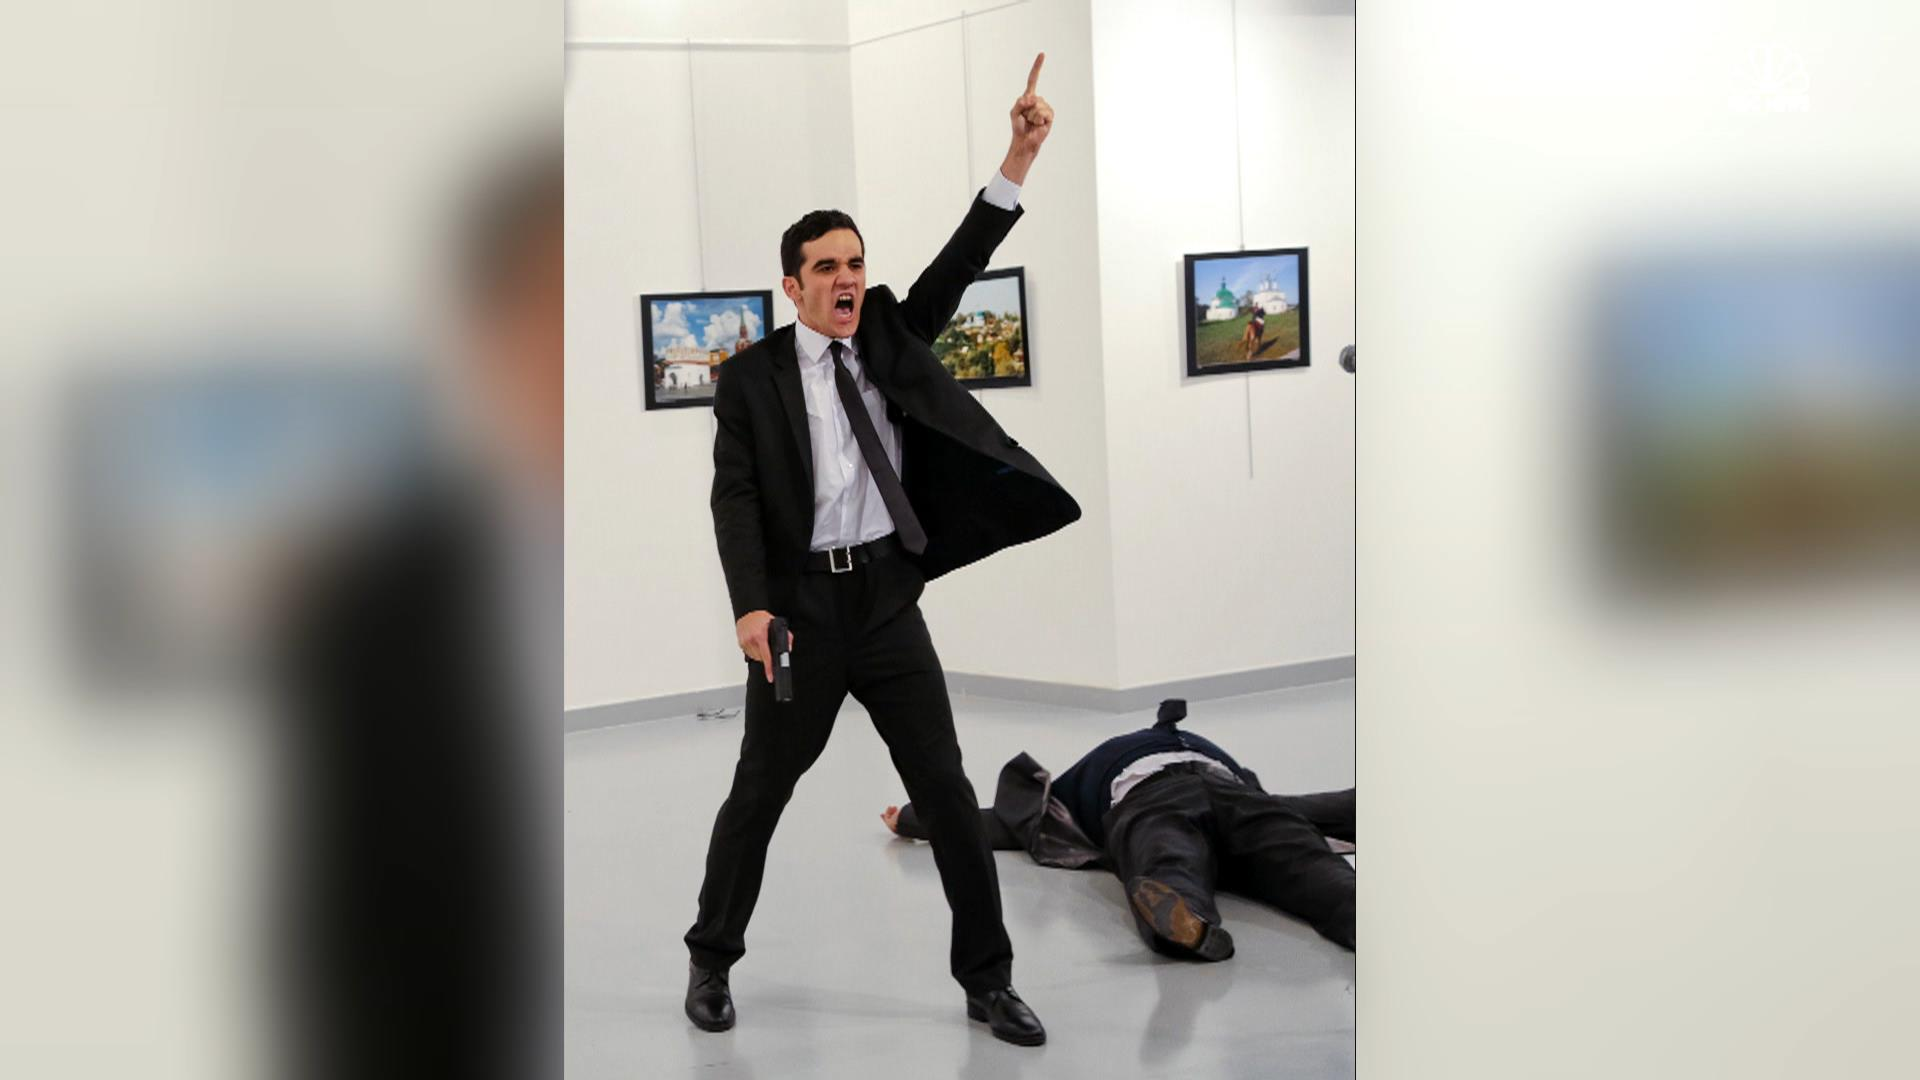 Russia joins hunt for clues into ambassador's assassination